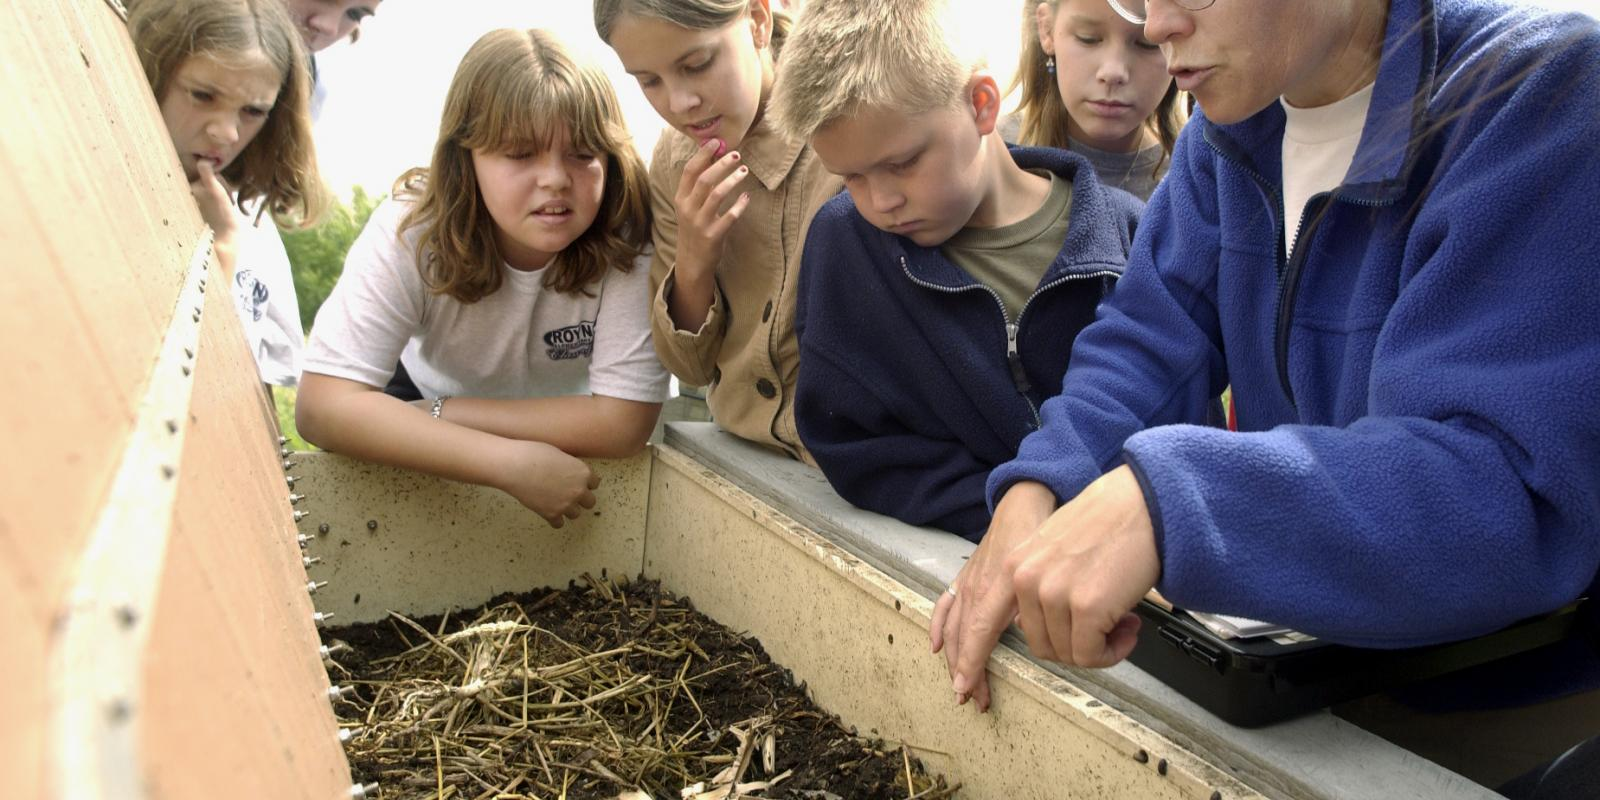 Fiifth graders from Roynon Elementary School in La Verne learn how worms can make compost during a tour of the Lyle Center